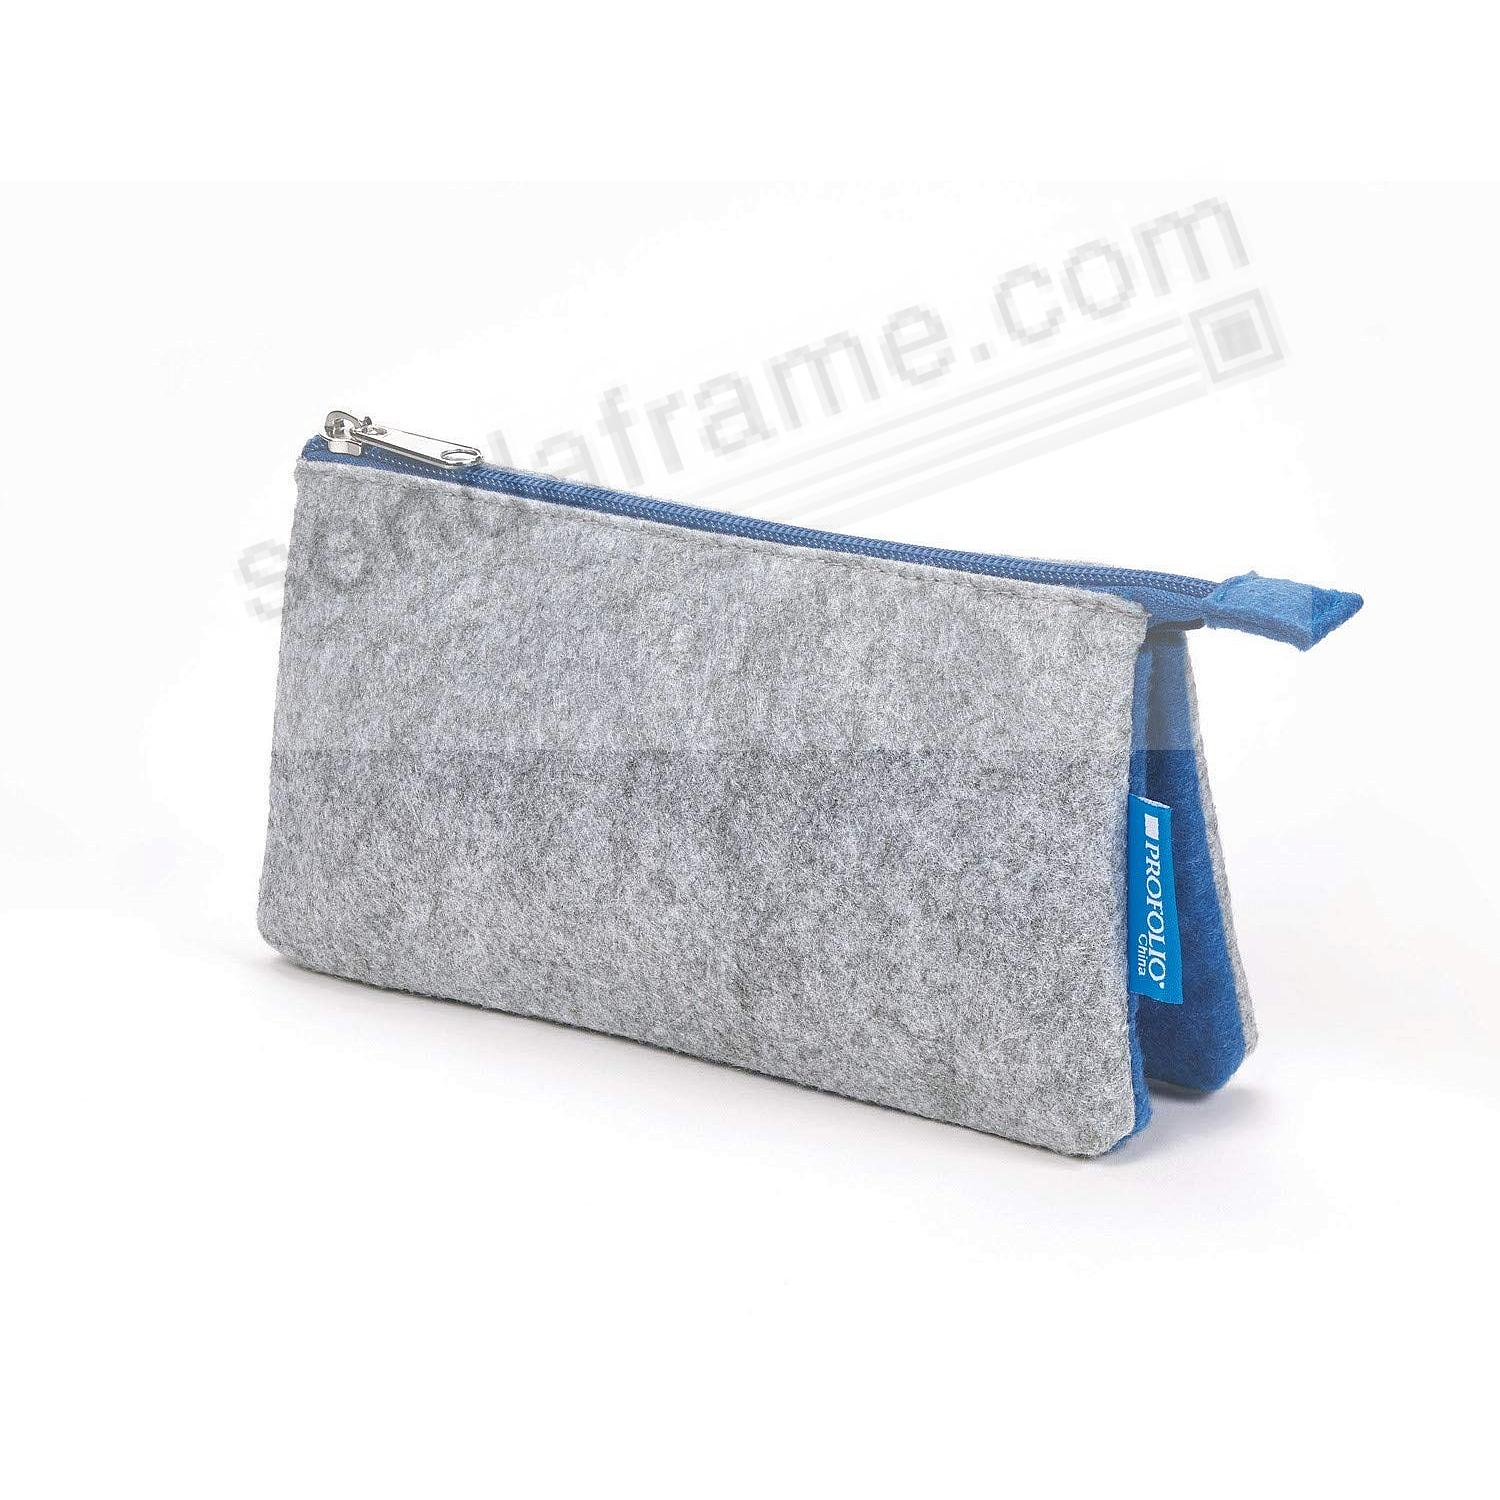 The NEW MIDTOWN (5x9-Large) POUCH by Itoya - GREY/Blue